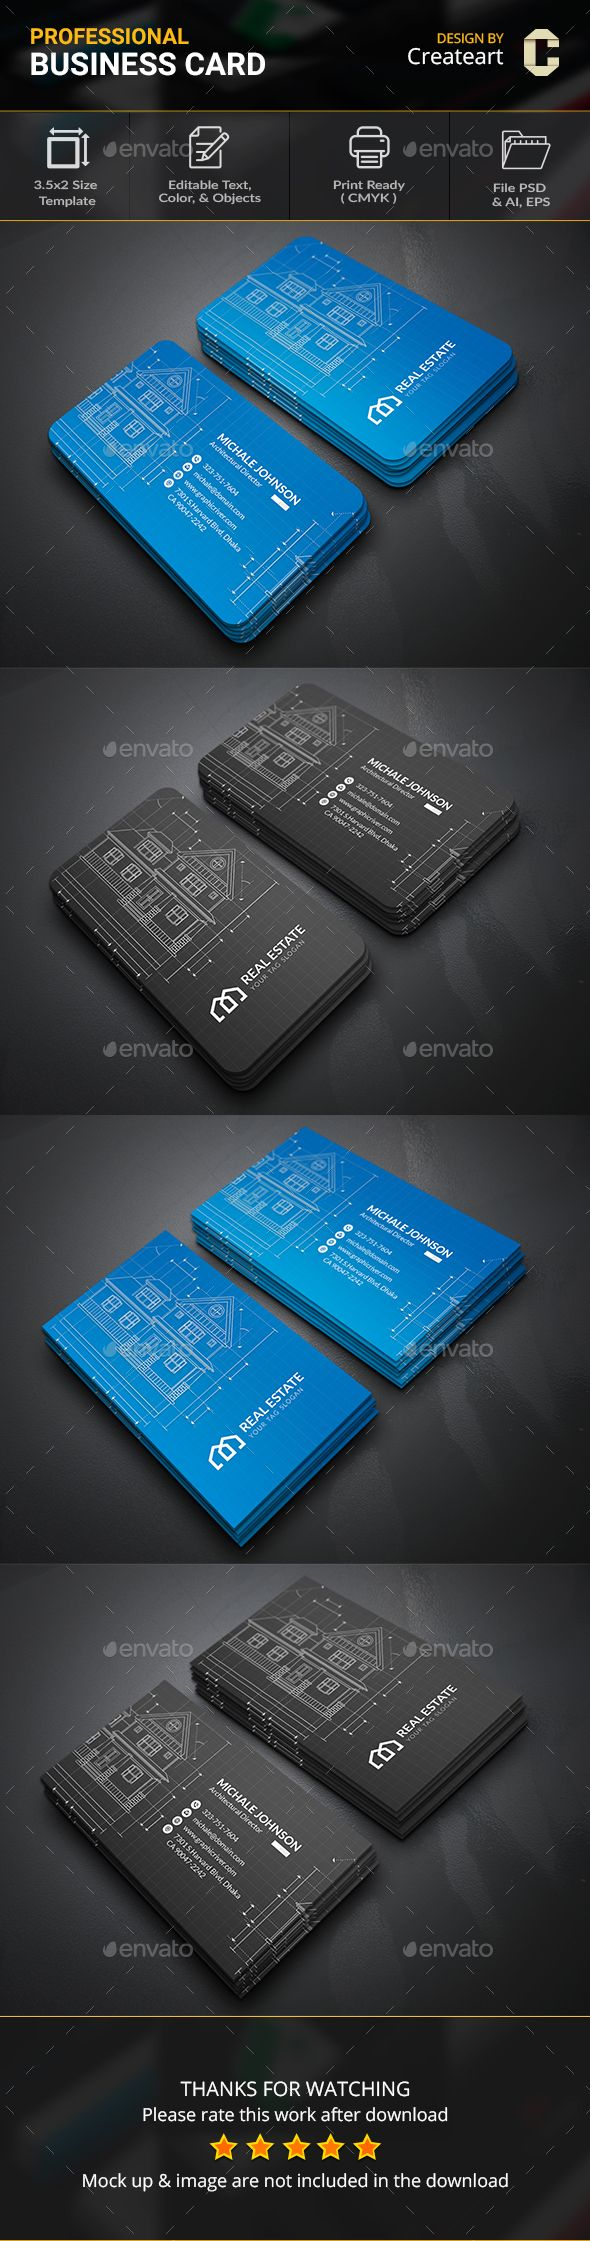 Architecture Business Card - #Business #Cards Print Templates Download here:  https://graphicriver.net/item/architecture-business-card/20075389?ref=alena994